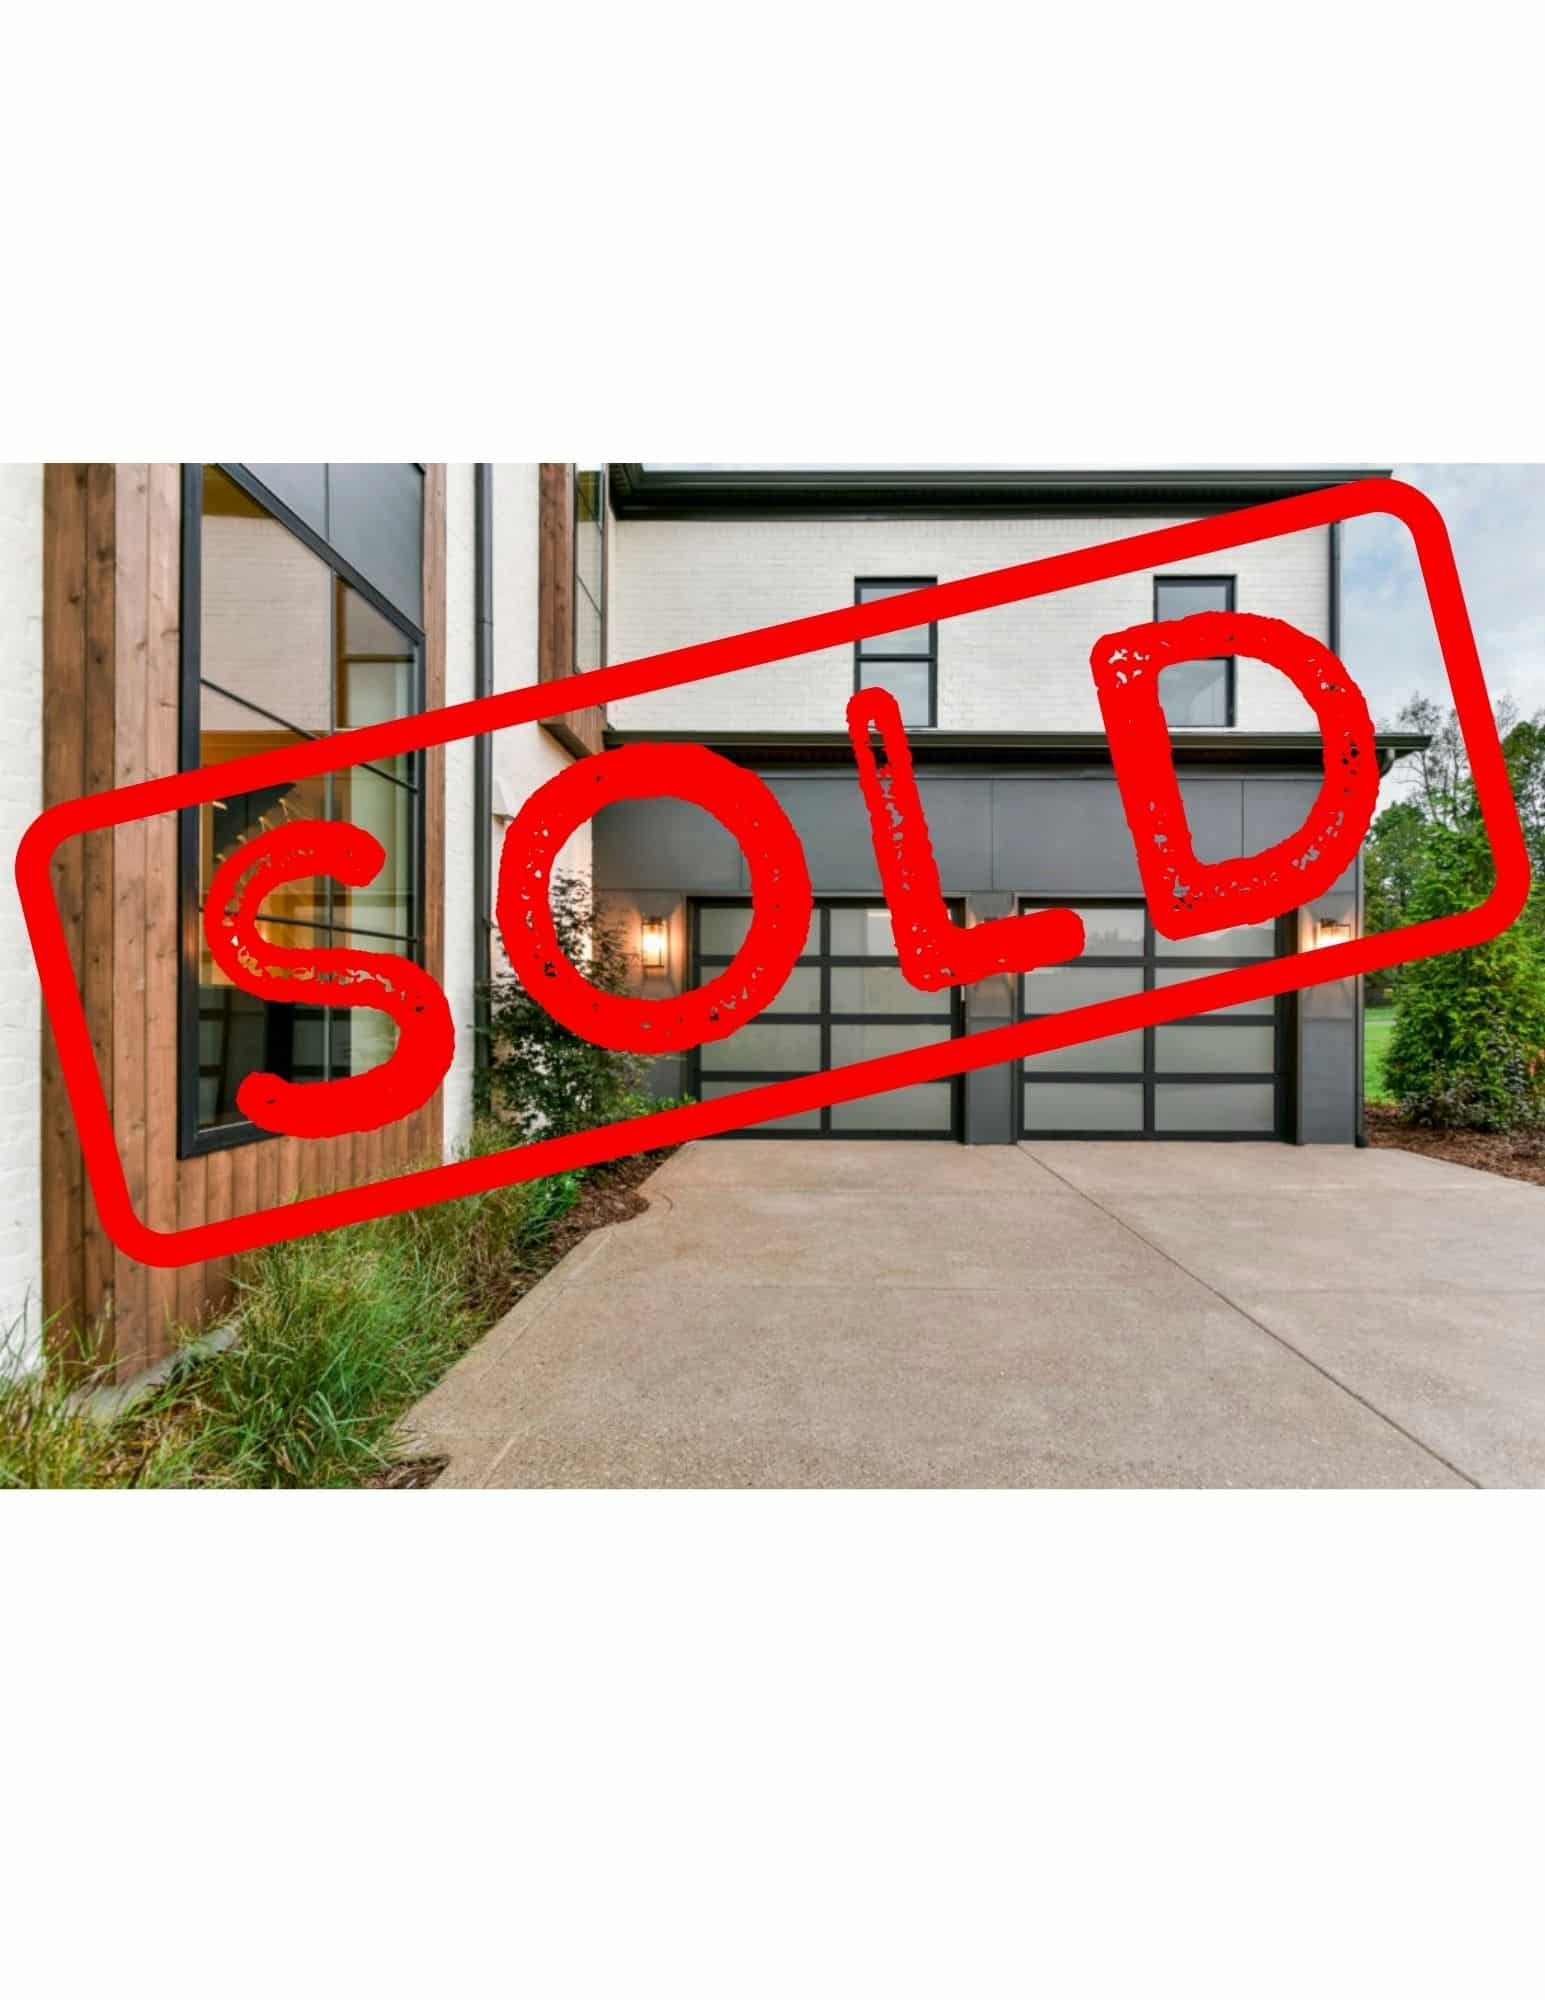 [SOLD] Brand new Clopay aluminum black garage door with frosted glass.